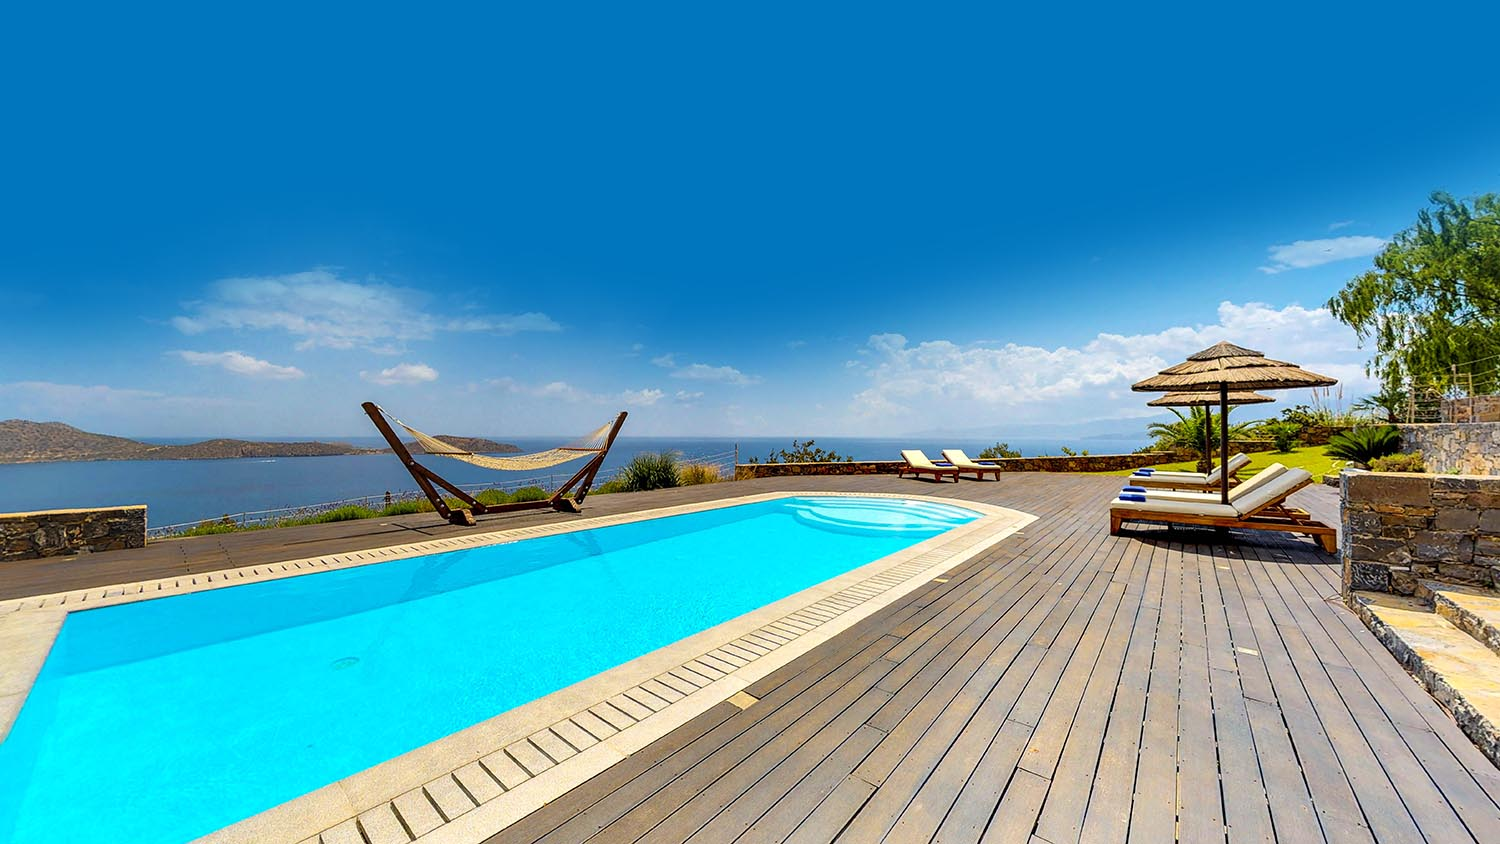 6 amazing villas in Elounda that you have to visit